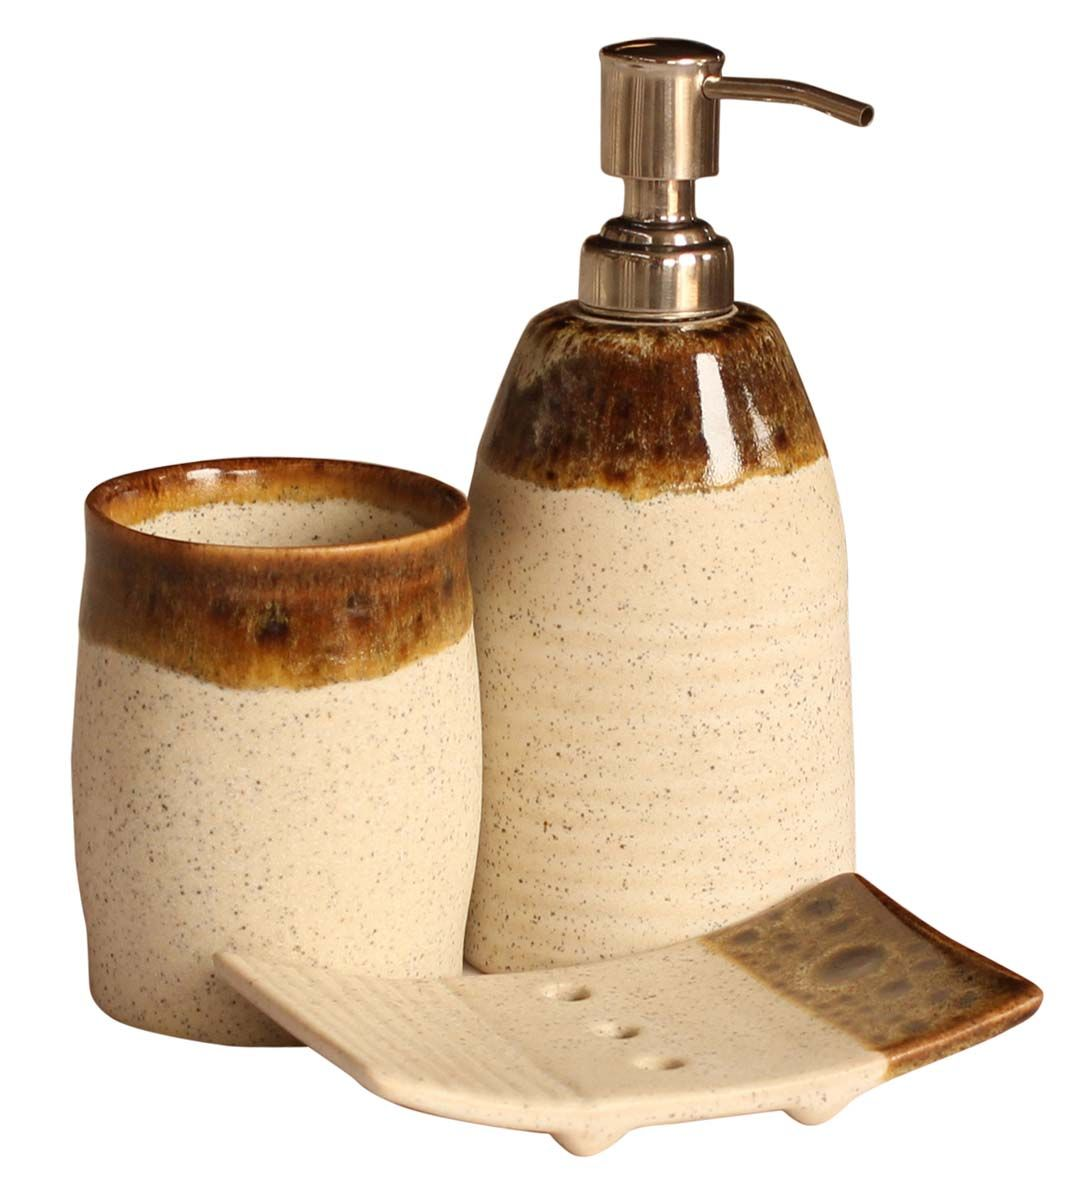 bulk wholesale handmade ceramic bathaccessories set 3 items - Bathroom Accessories Distributors